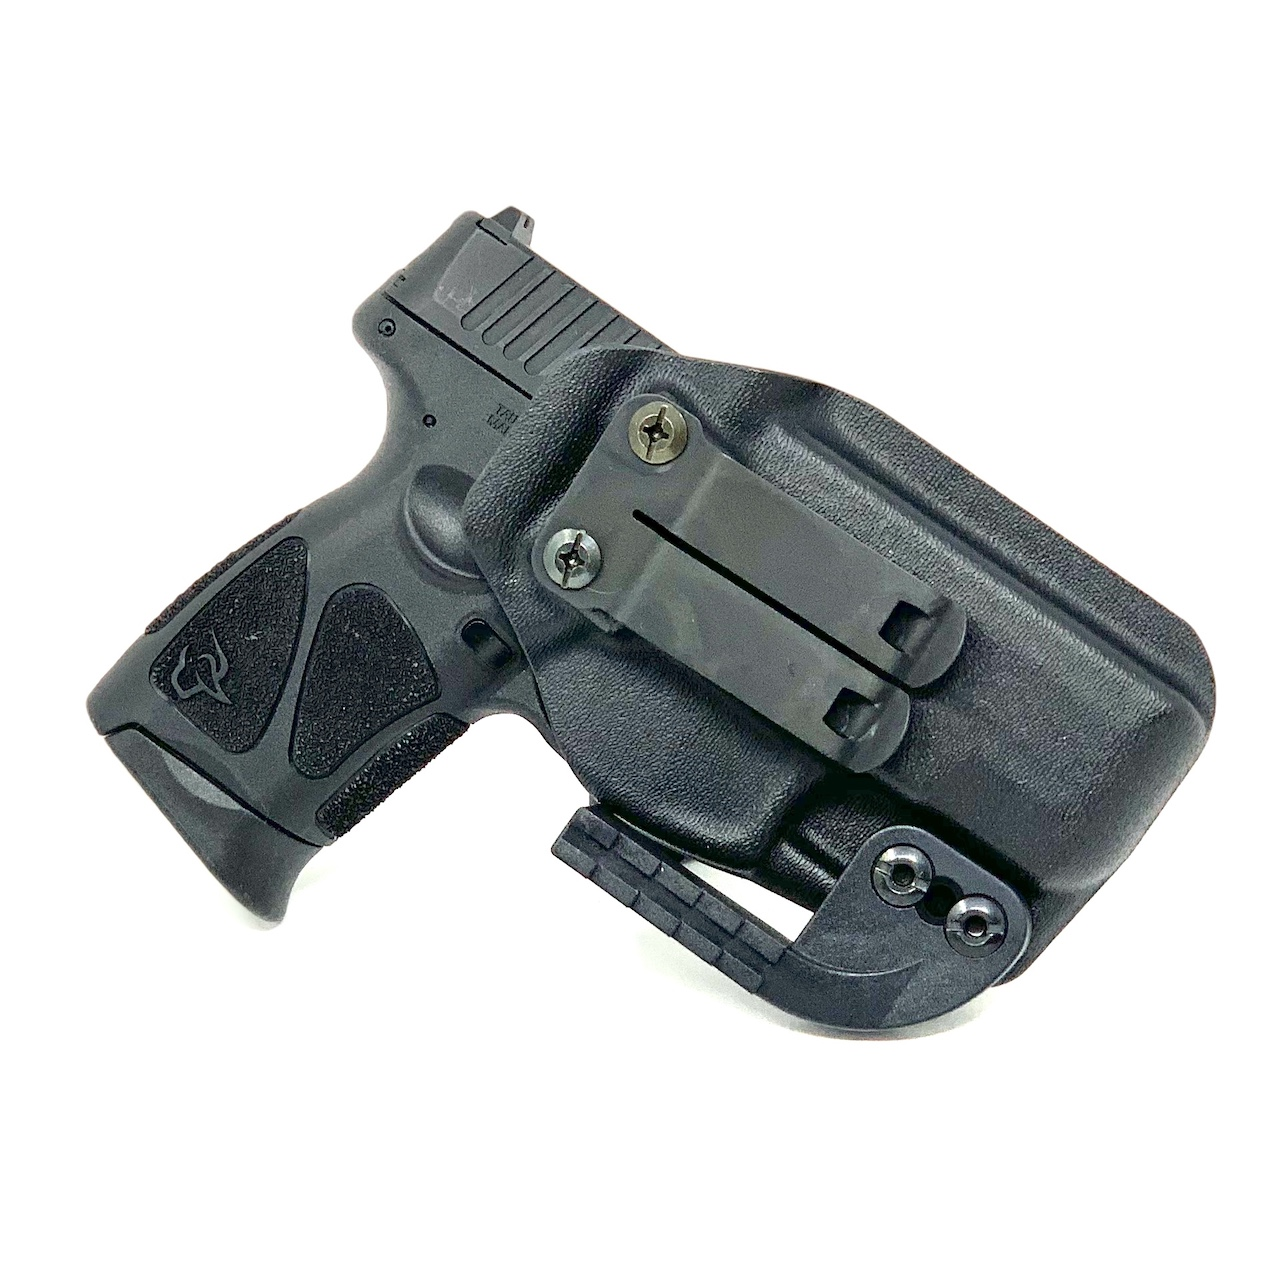 Taurus G3c Optics Ready AIWB Holster